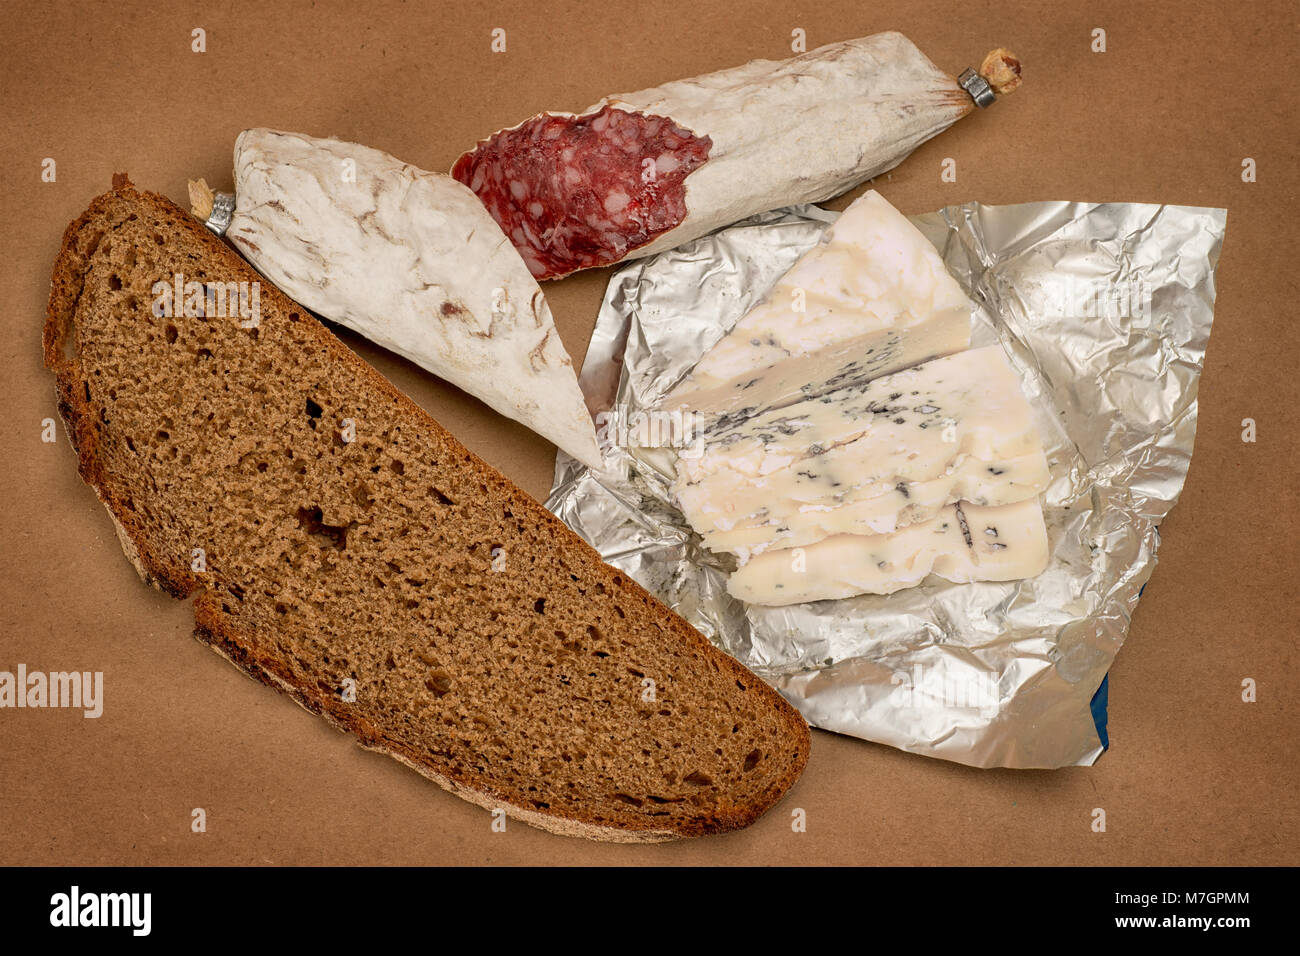 Breakfast theme still life. Bread, Roquefort cheese and smoked sausage on brown craft paper background - Stock Image